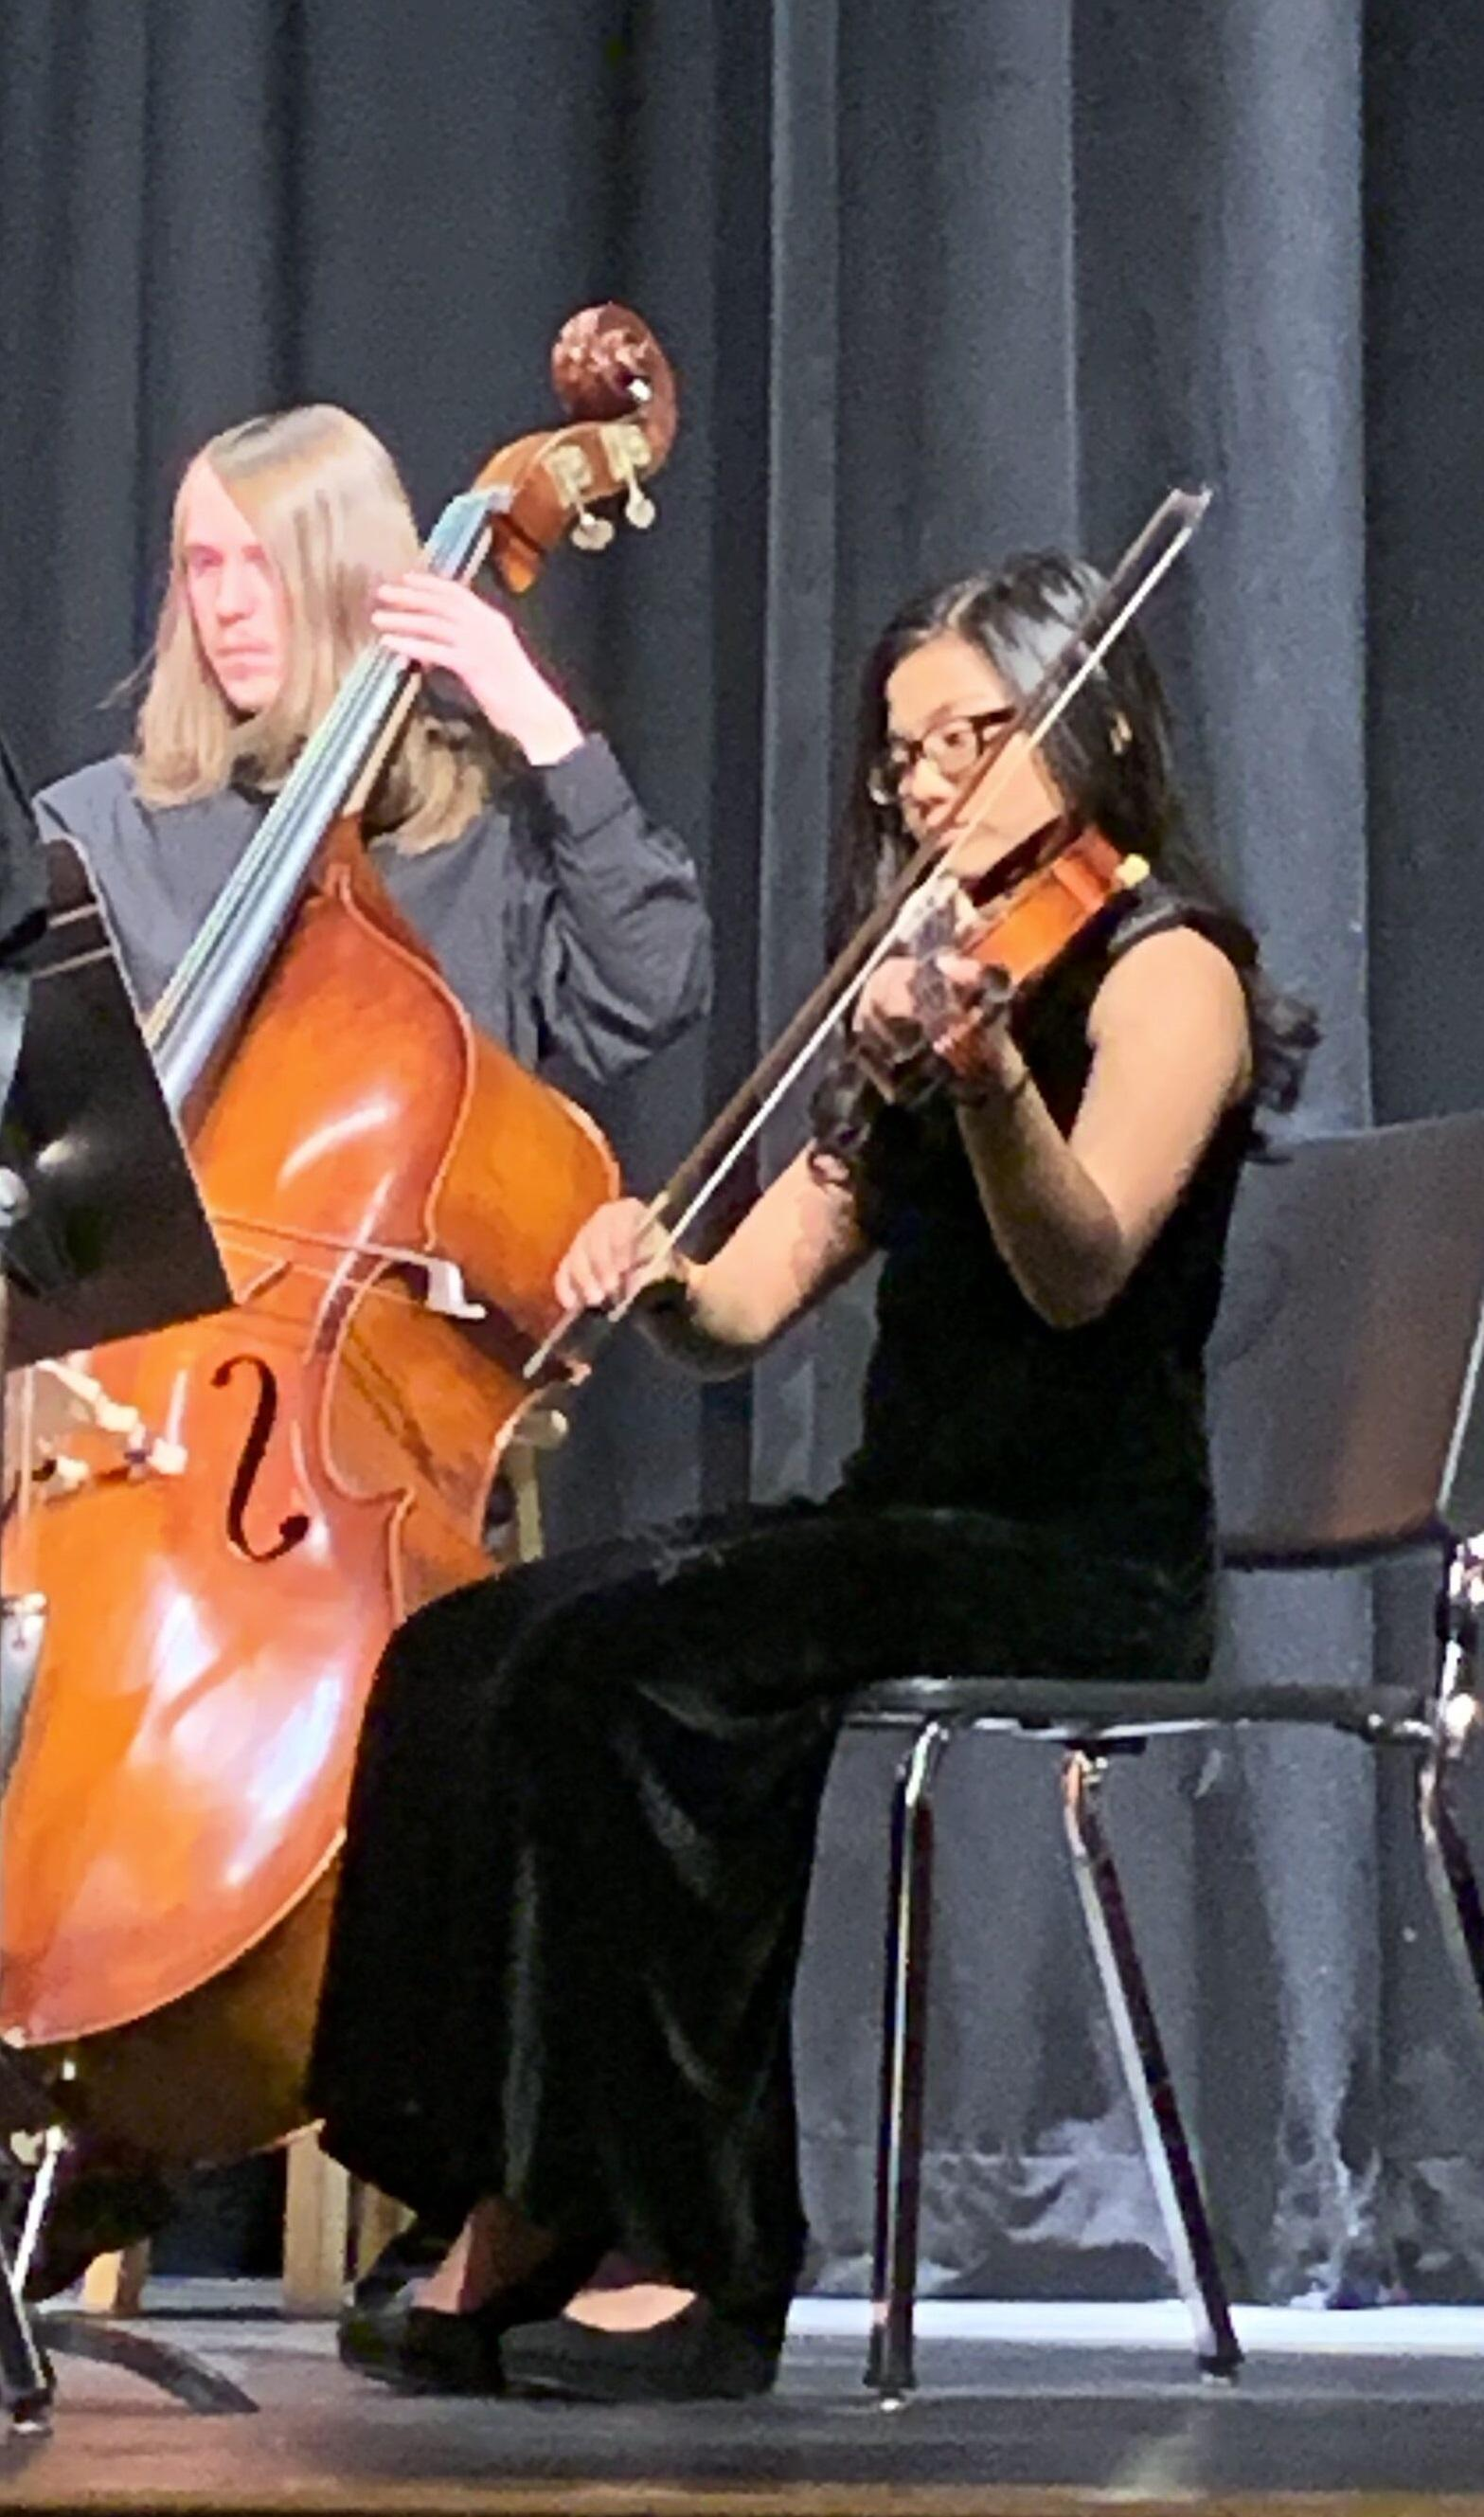 Viola and bass